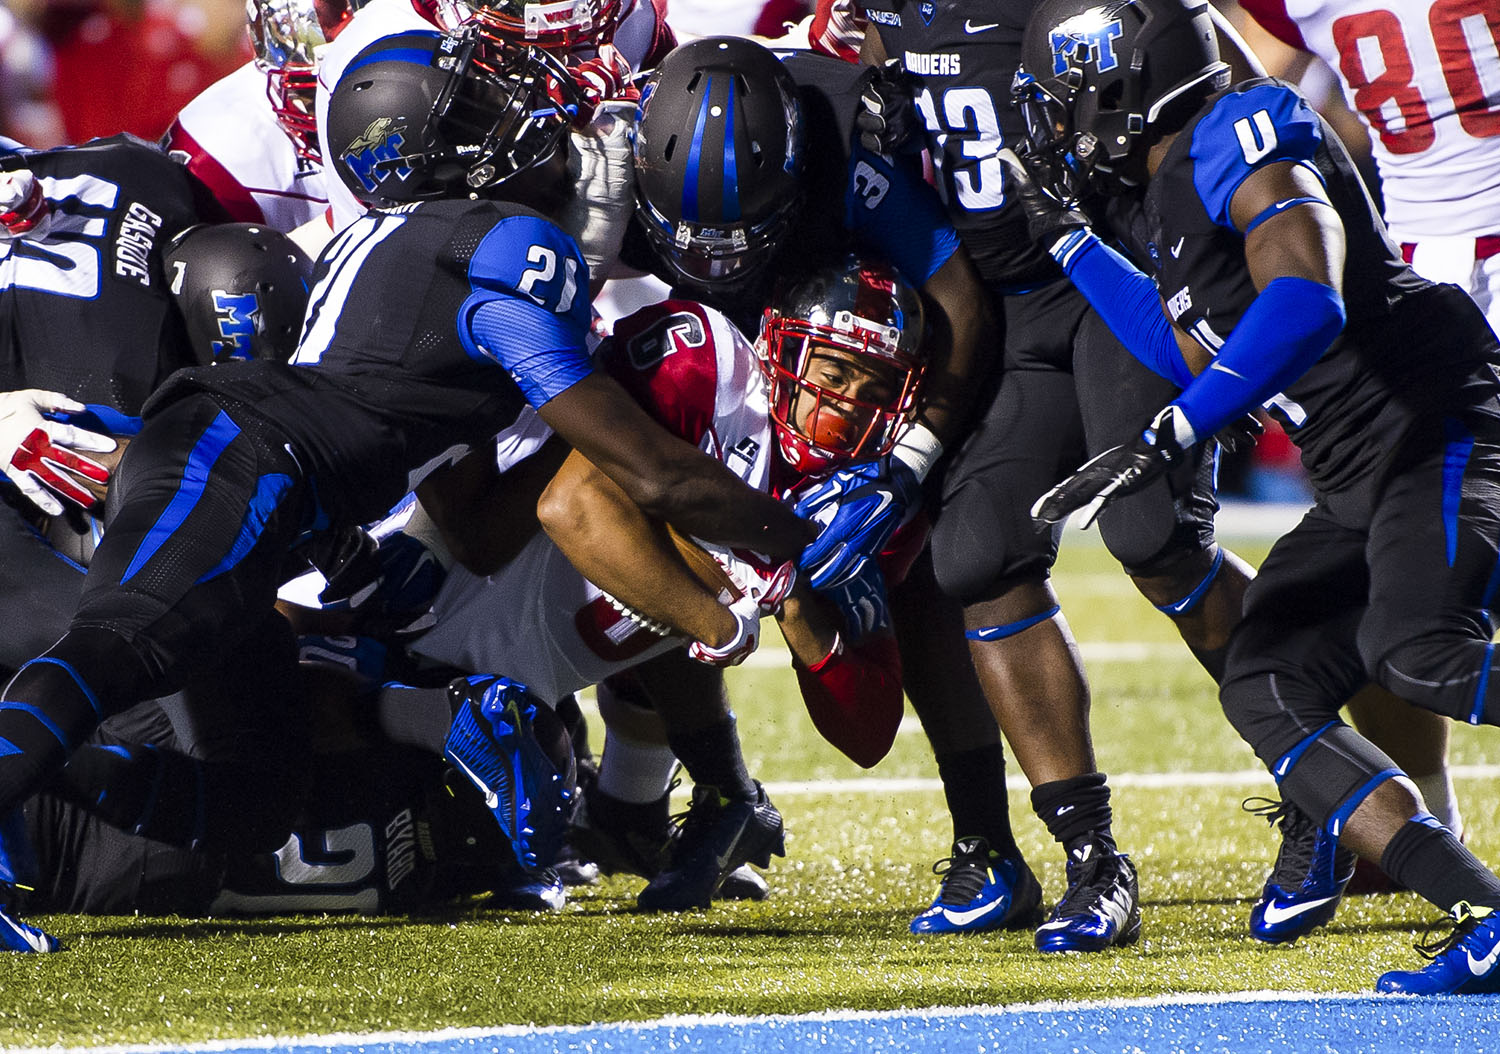 Redshirt sophomore wide receiver Joel German is taken to the ground by the MTSU defense during the WKU vs MTSU game on Sept. 13, 2014. Nick Wagner/HERALD